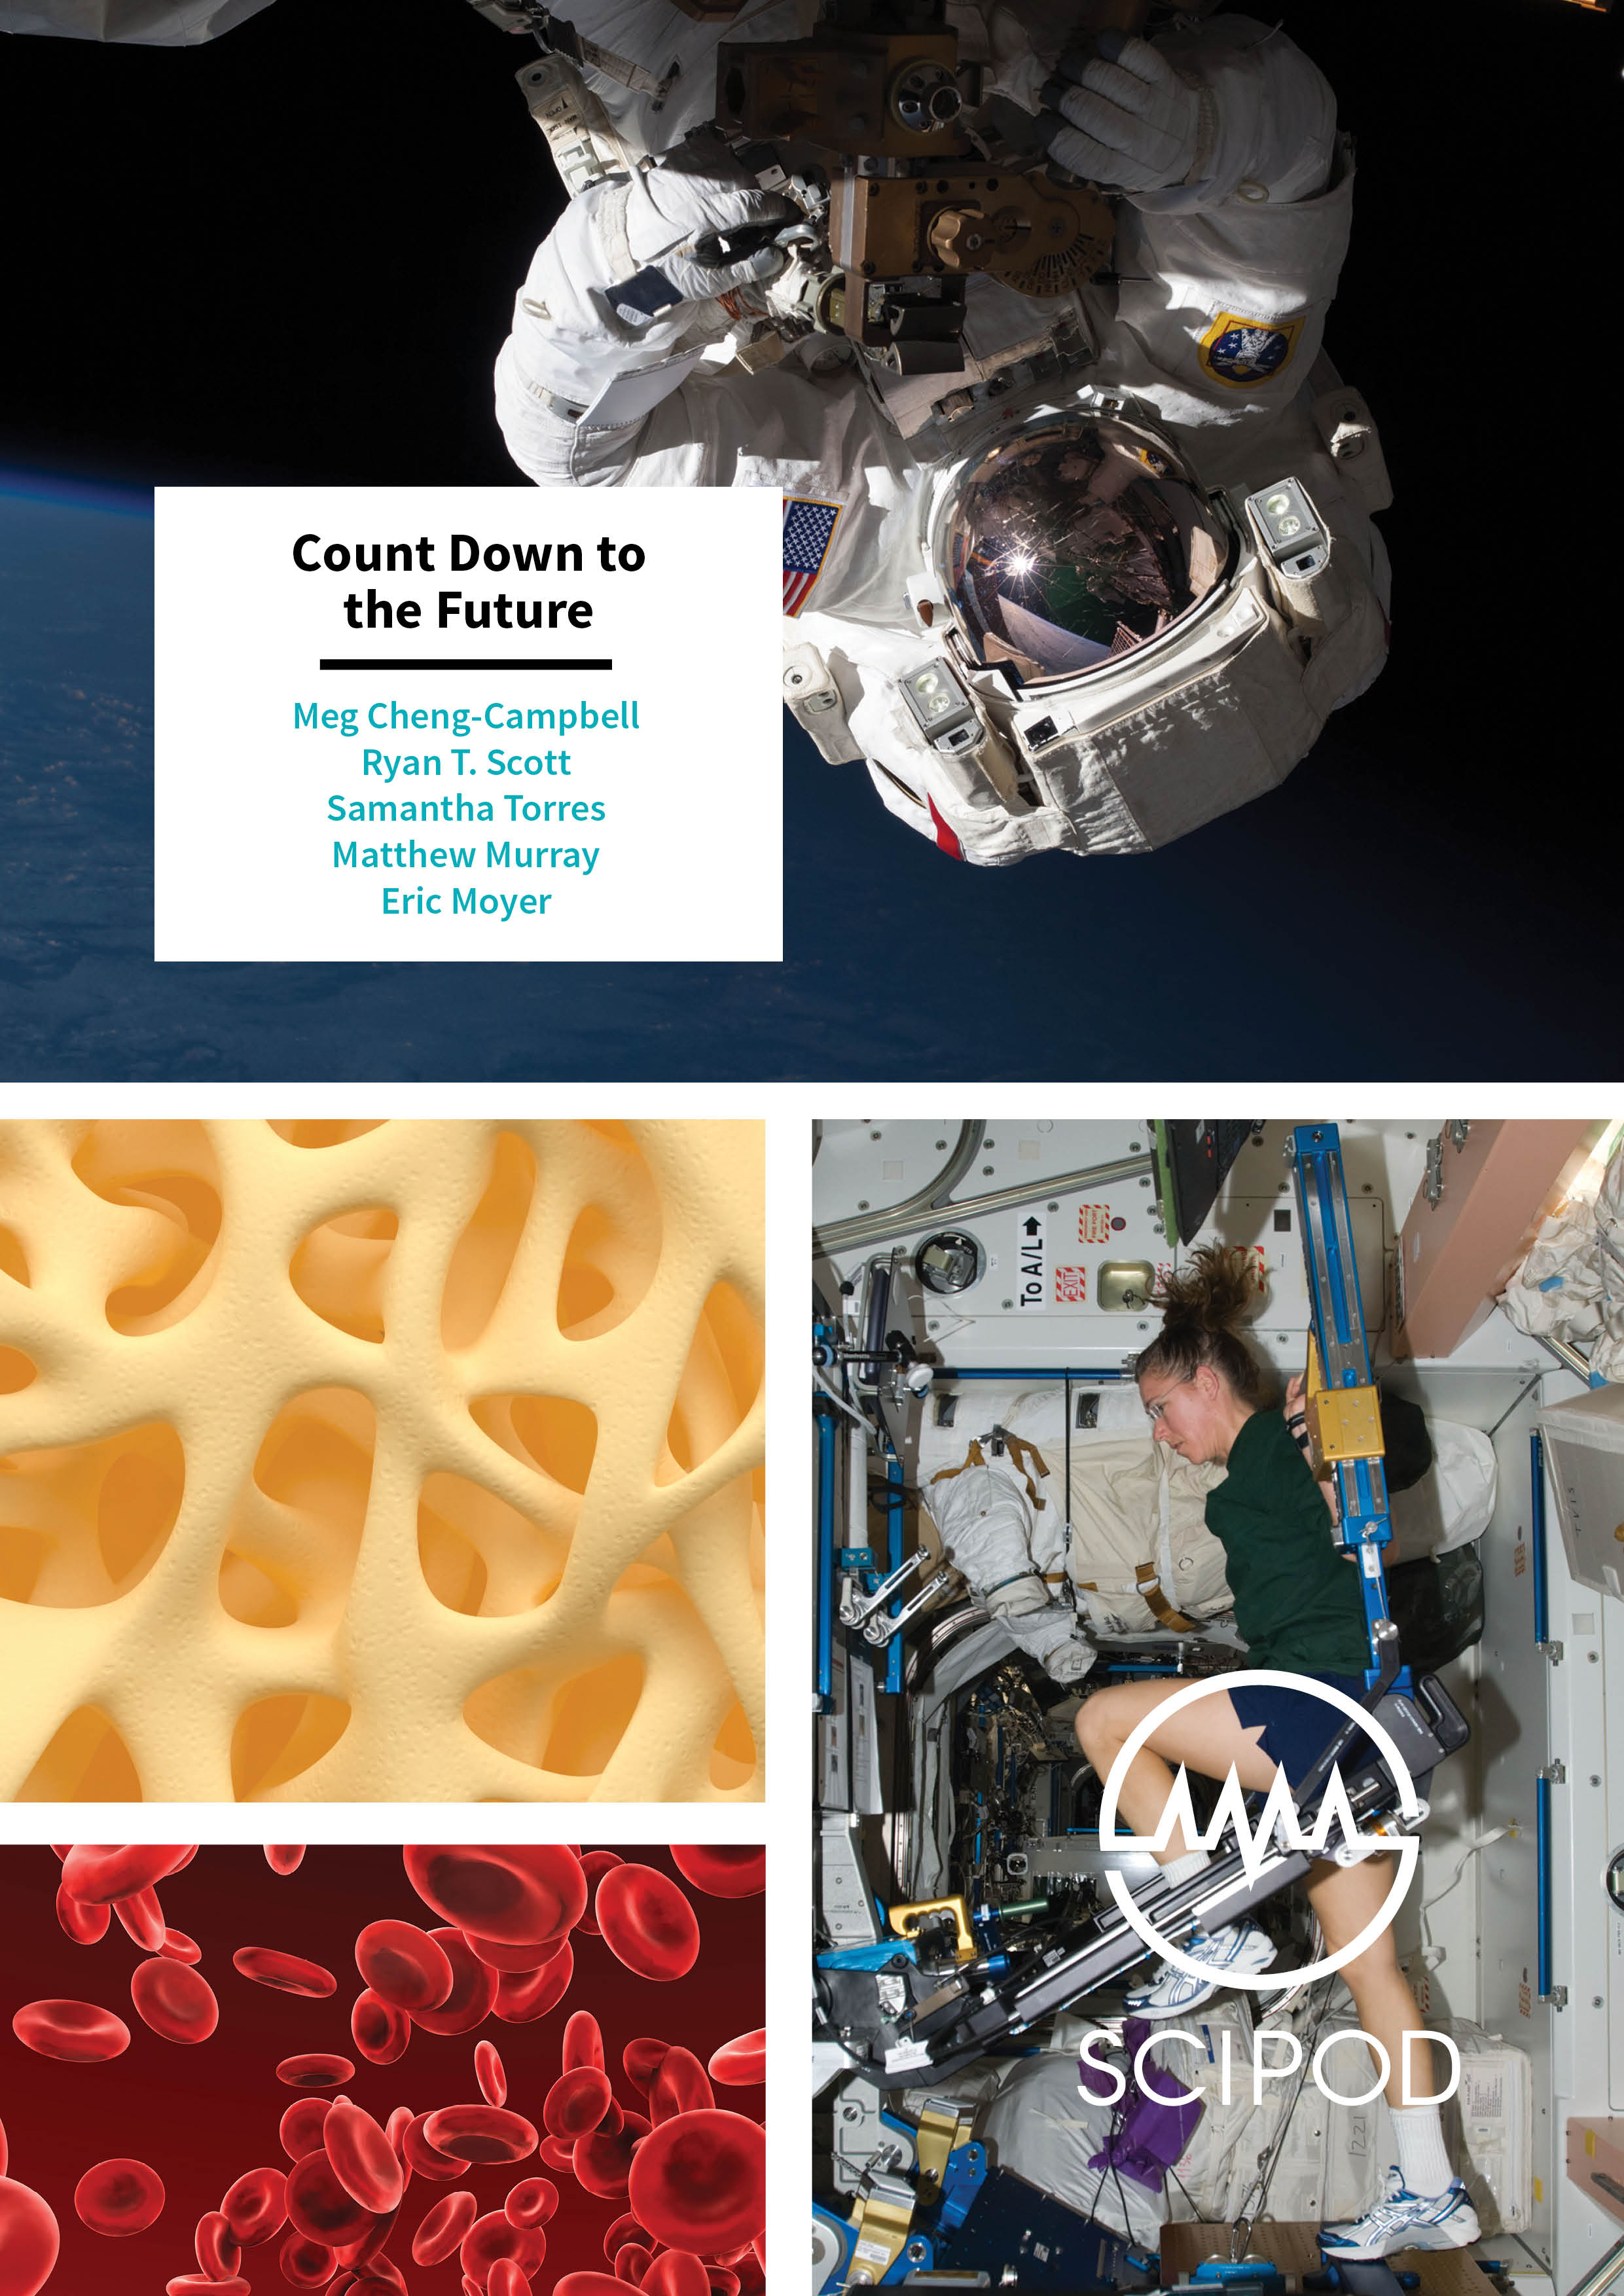 Count Down to the Future – Meg Cheng-Campbell, Ryan T. Scott, Samantha Torres, Matthew Murray, Eric Moyer – NASA Ames Research Center